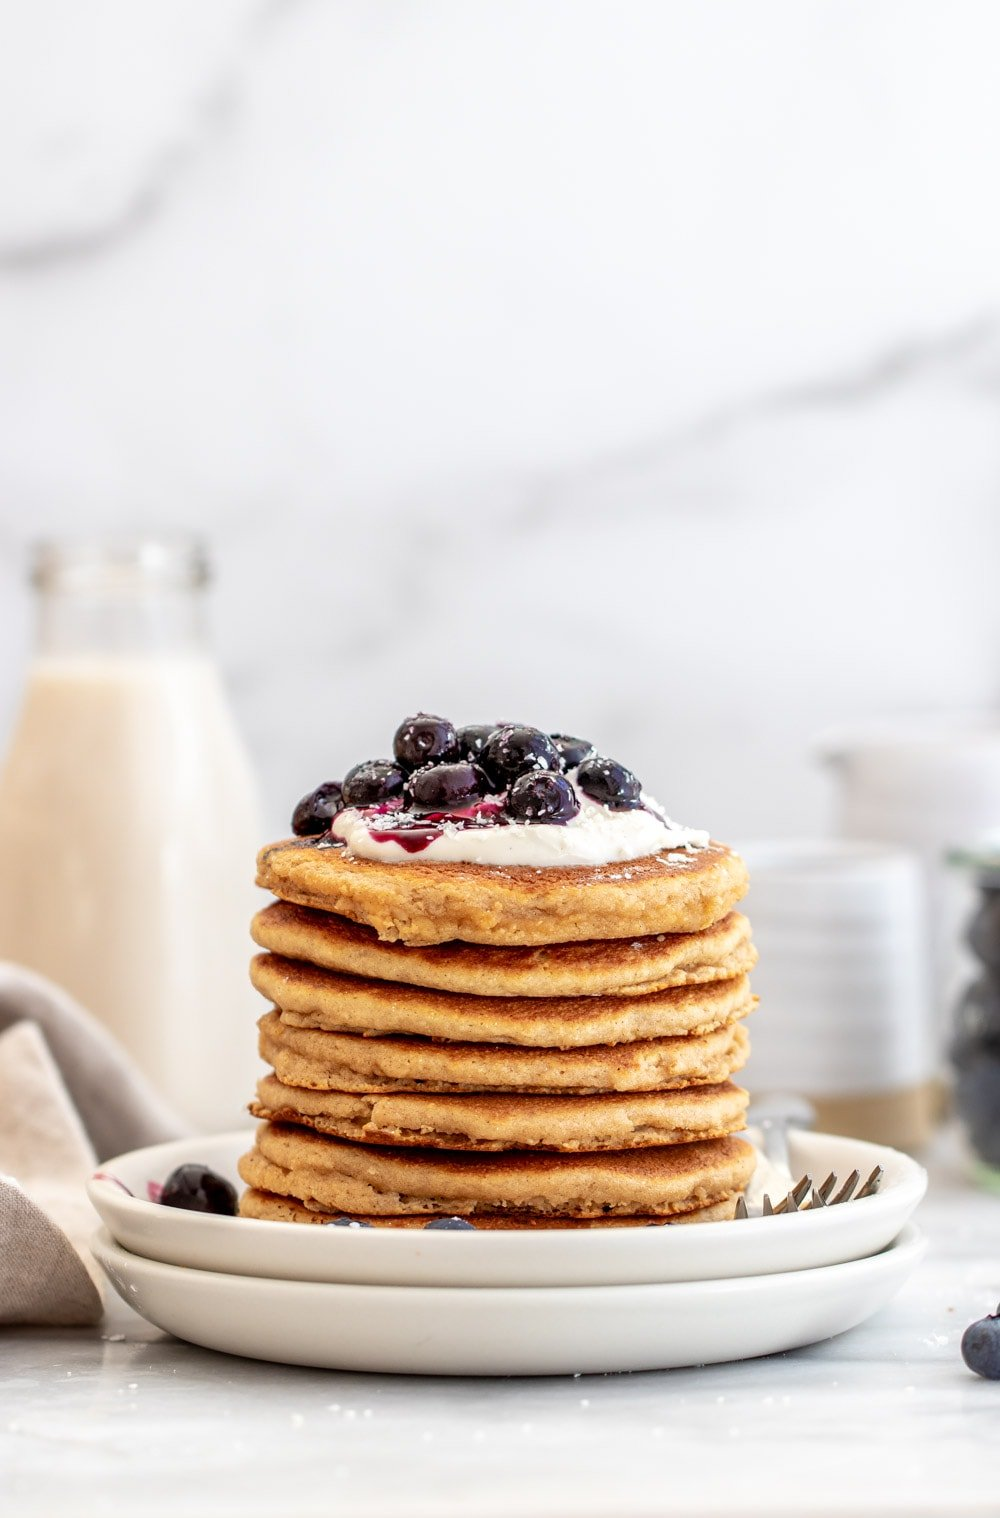 Almond flour pancakes with blueberries on top.